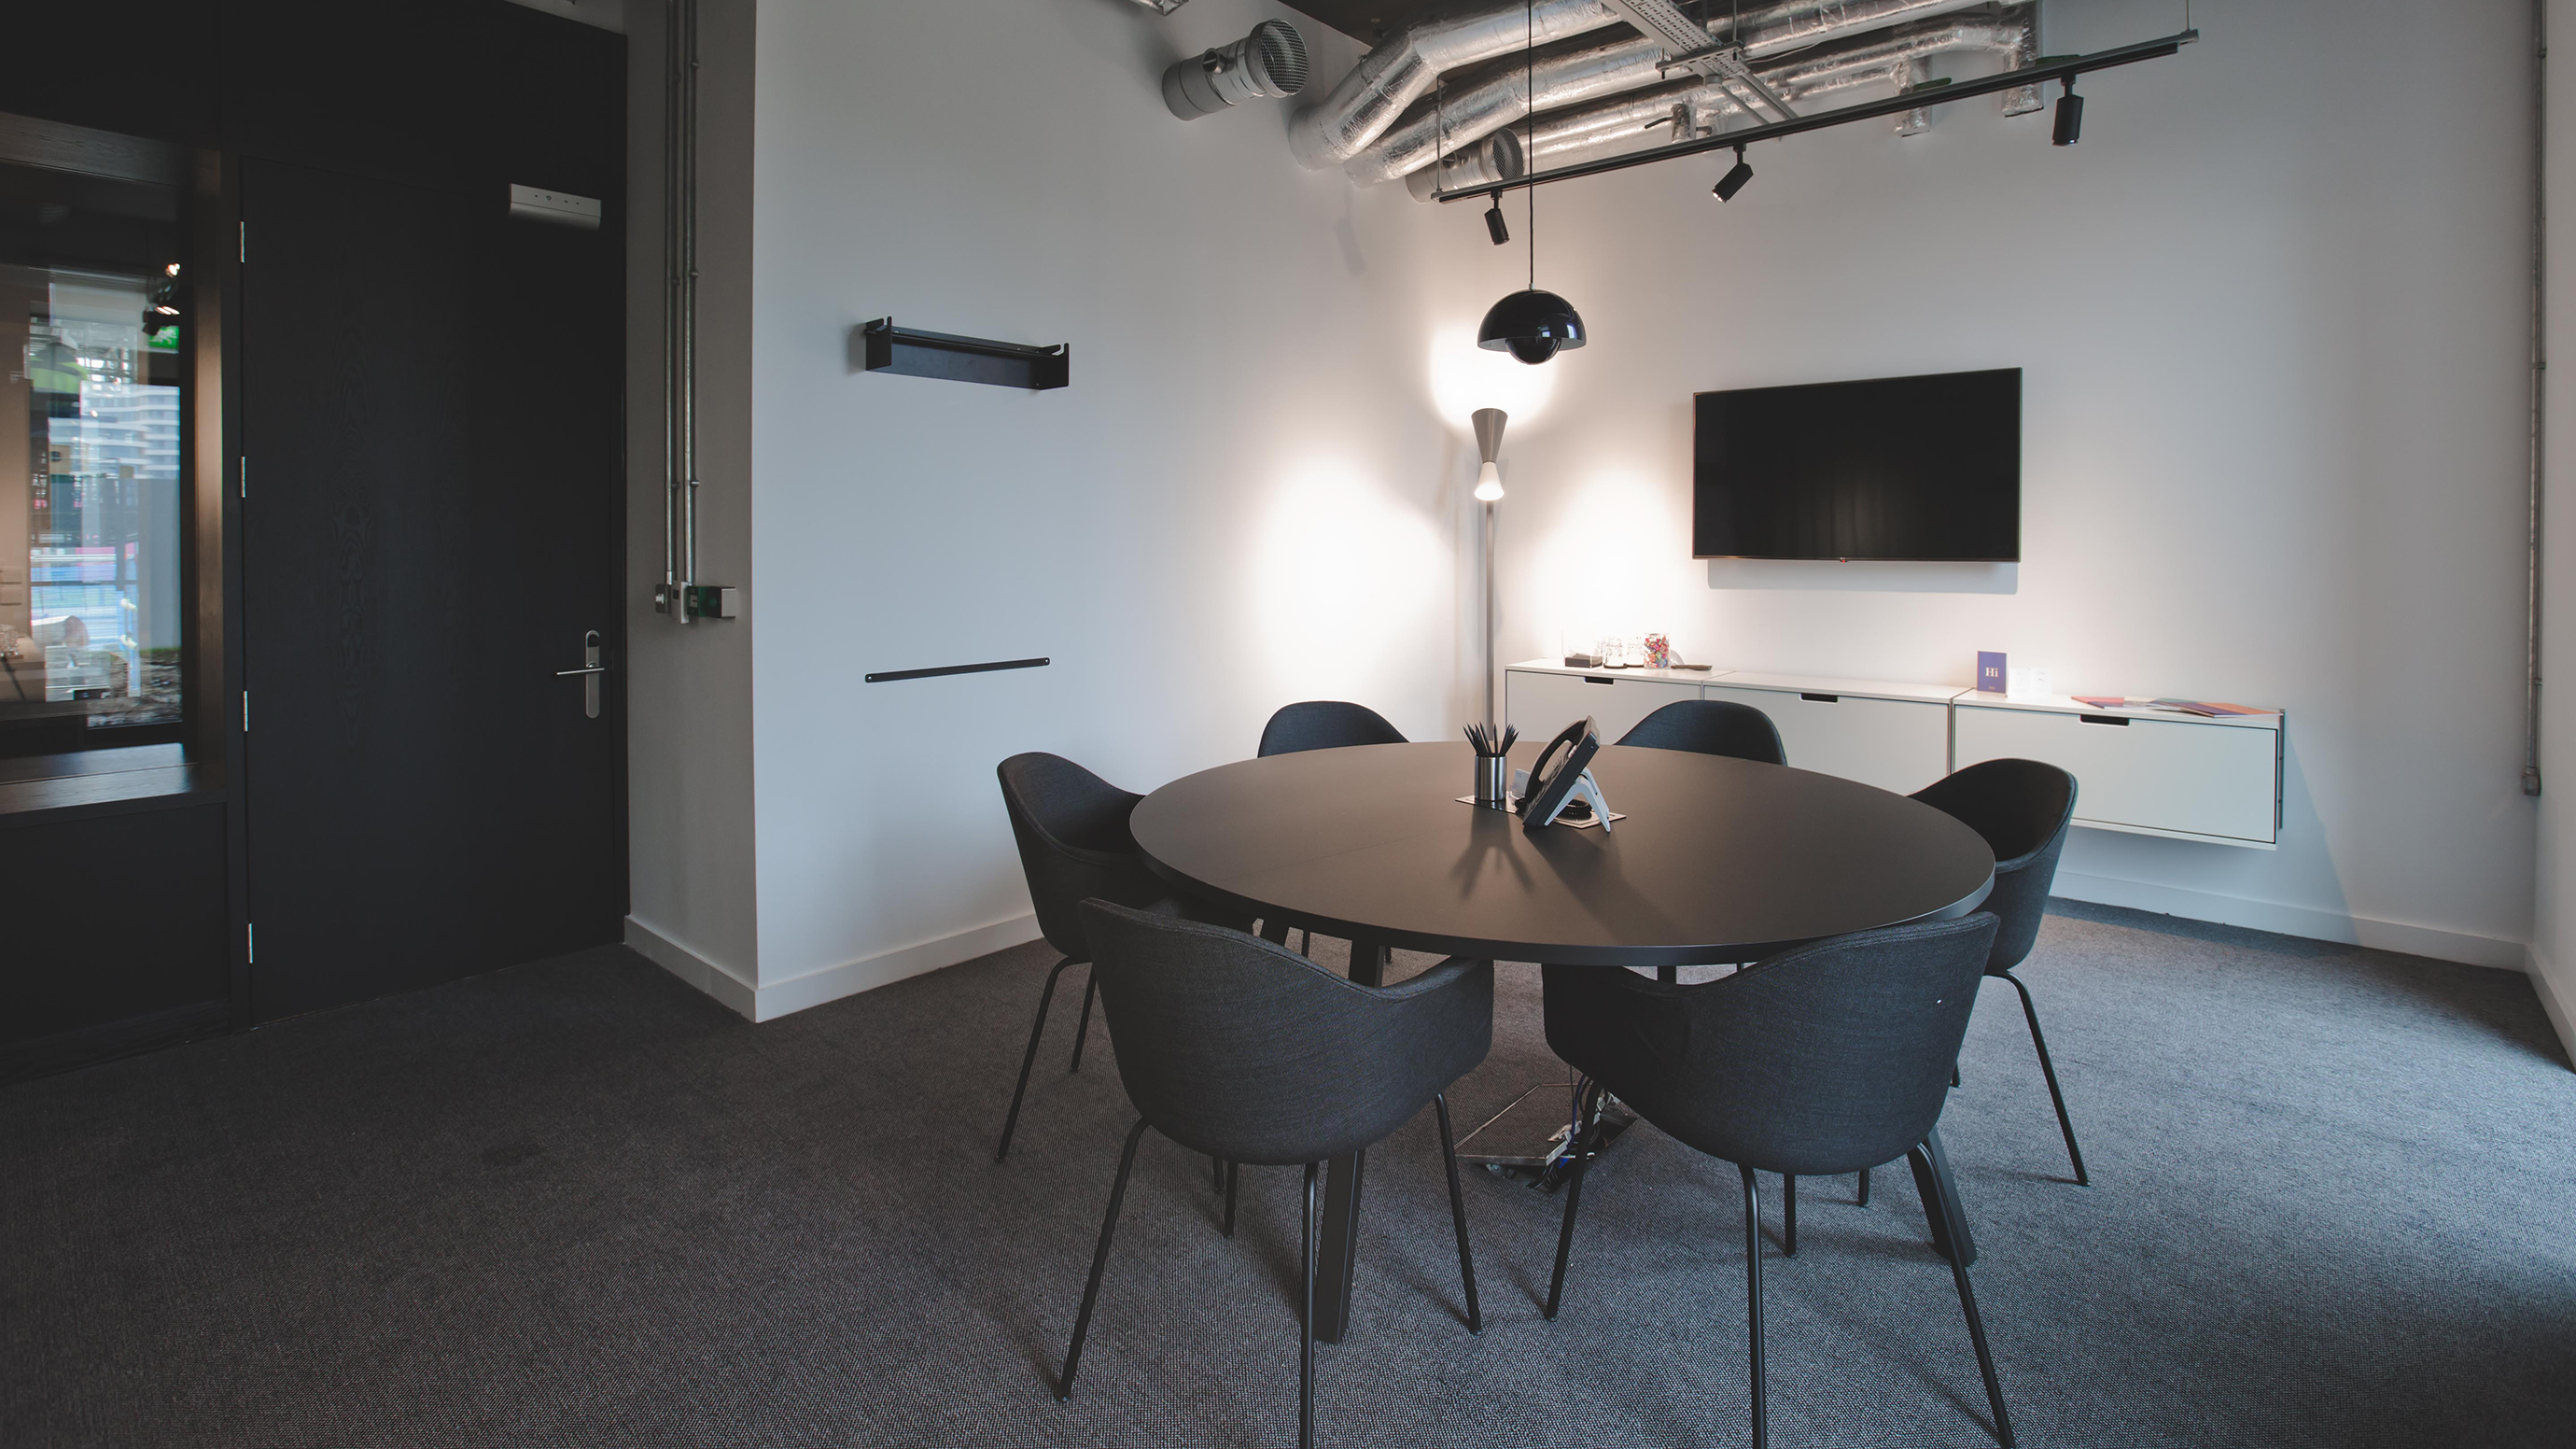 Small meeting room with round table and dark chairs and carpet at TOG building Tintagel House London